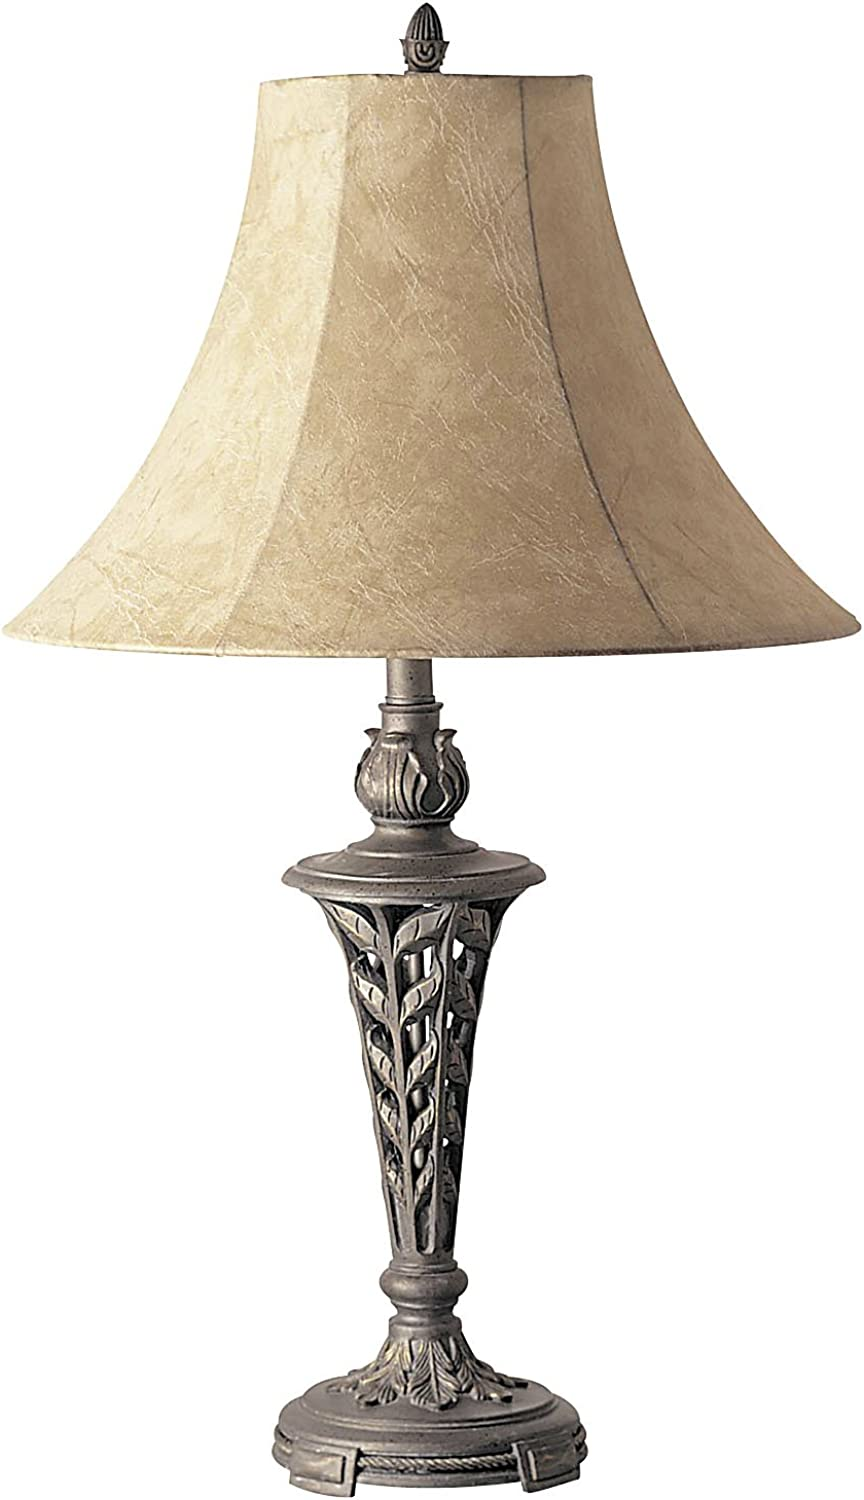 ORE International 2015?Table Lamp, Antique Brass, 31-Inch